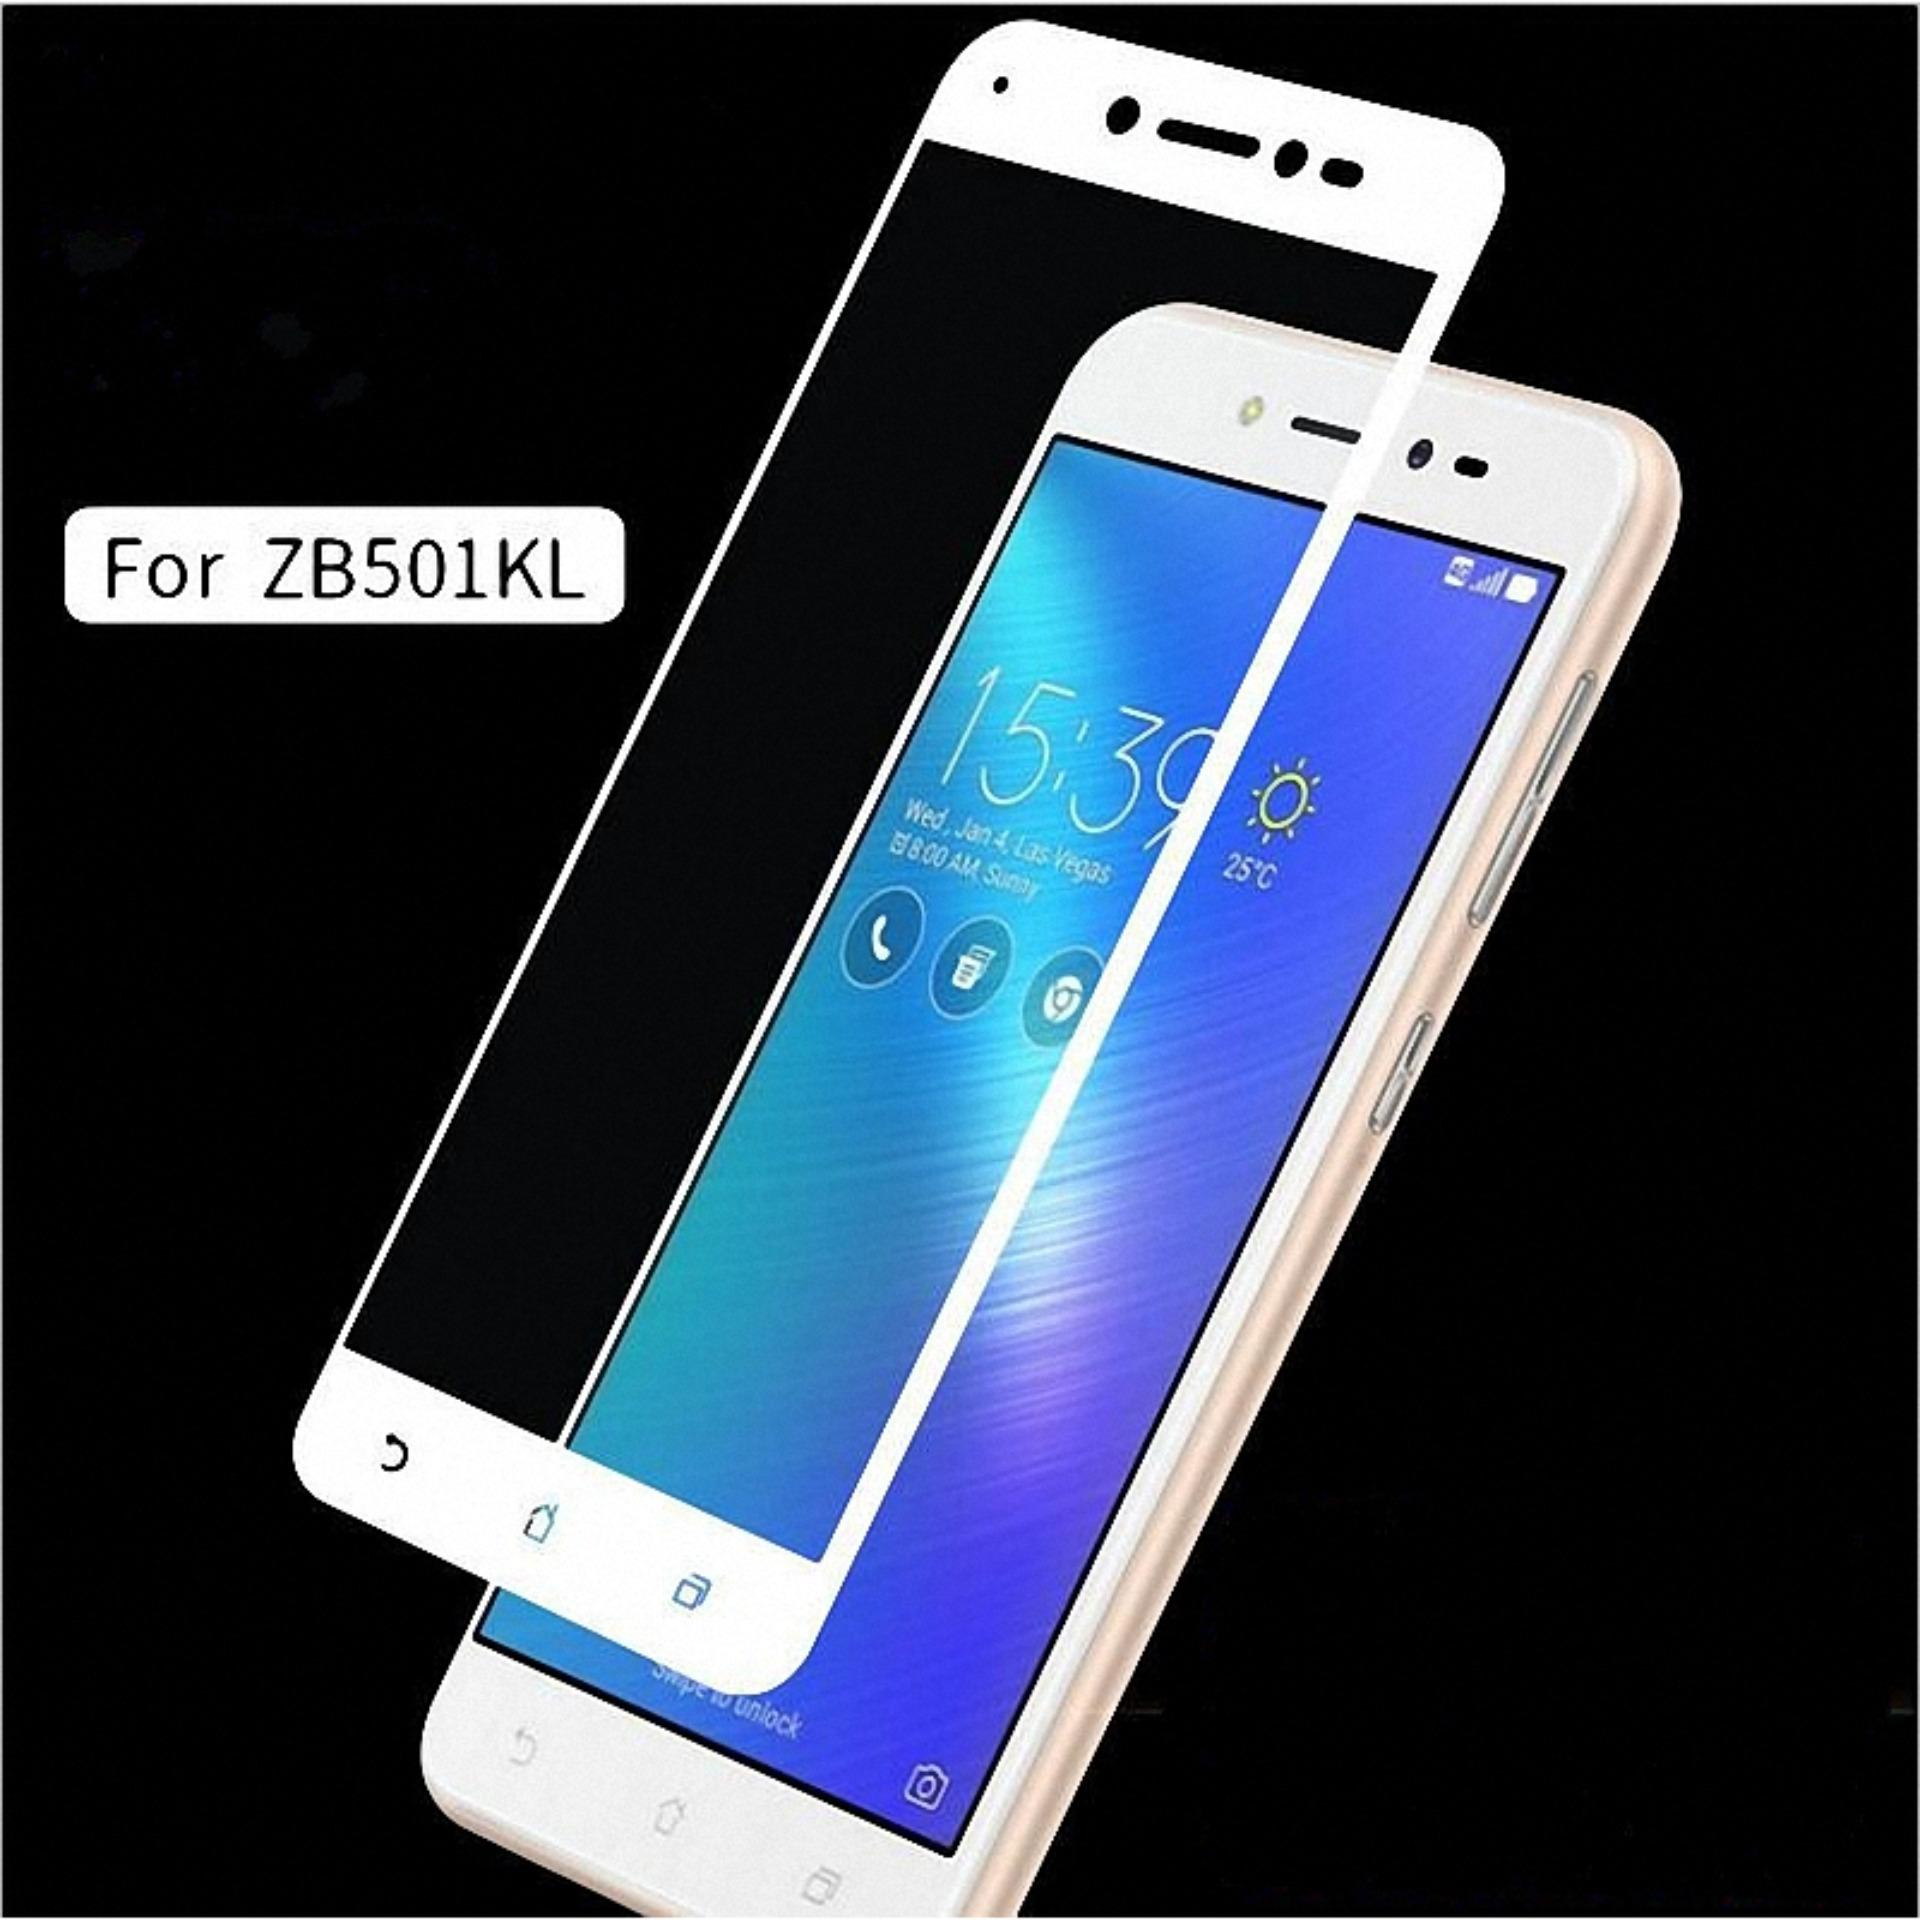 Nillkin Sparkle Leather Case Flip Cover Original Asus Zenfone 3 Tempered Glass Screen Protection For 2 55 Hd Protector Live Zb501kl Full List Warna Putih